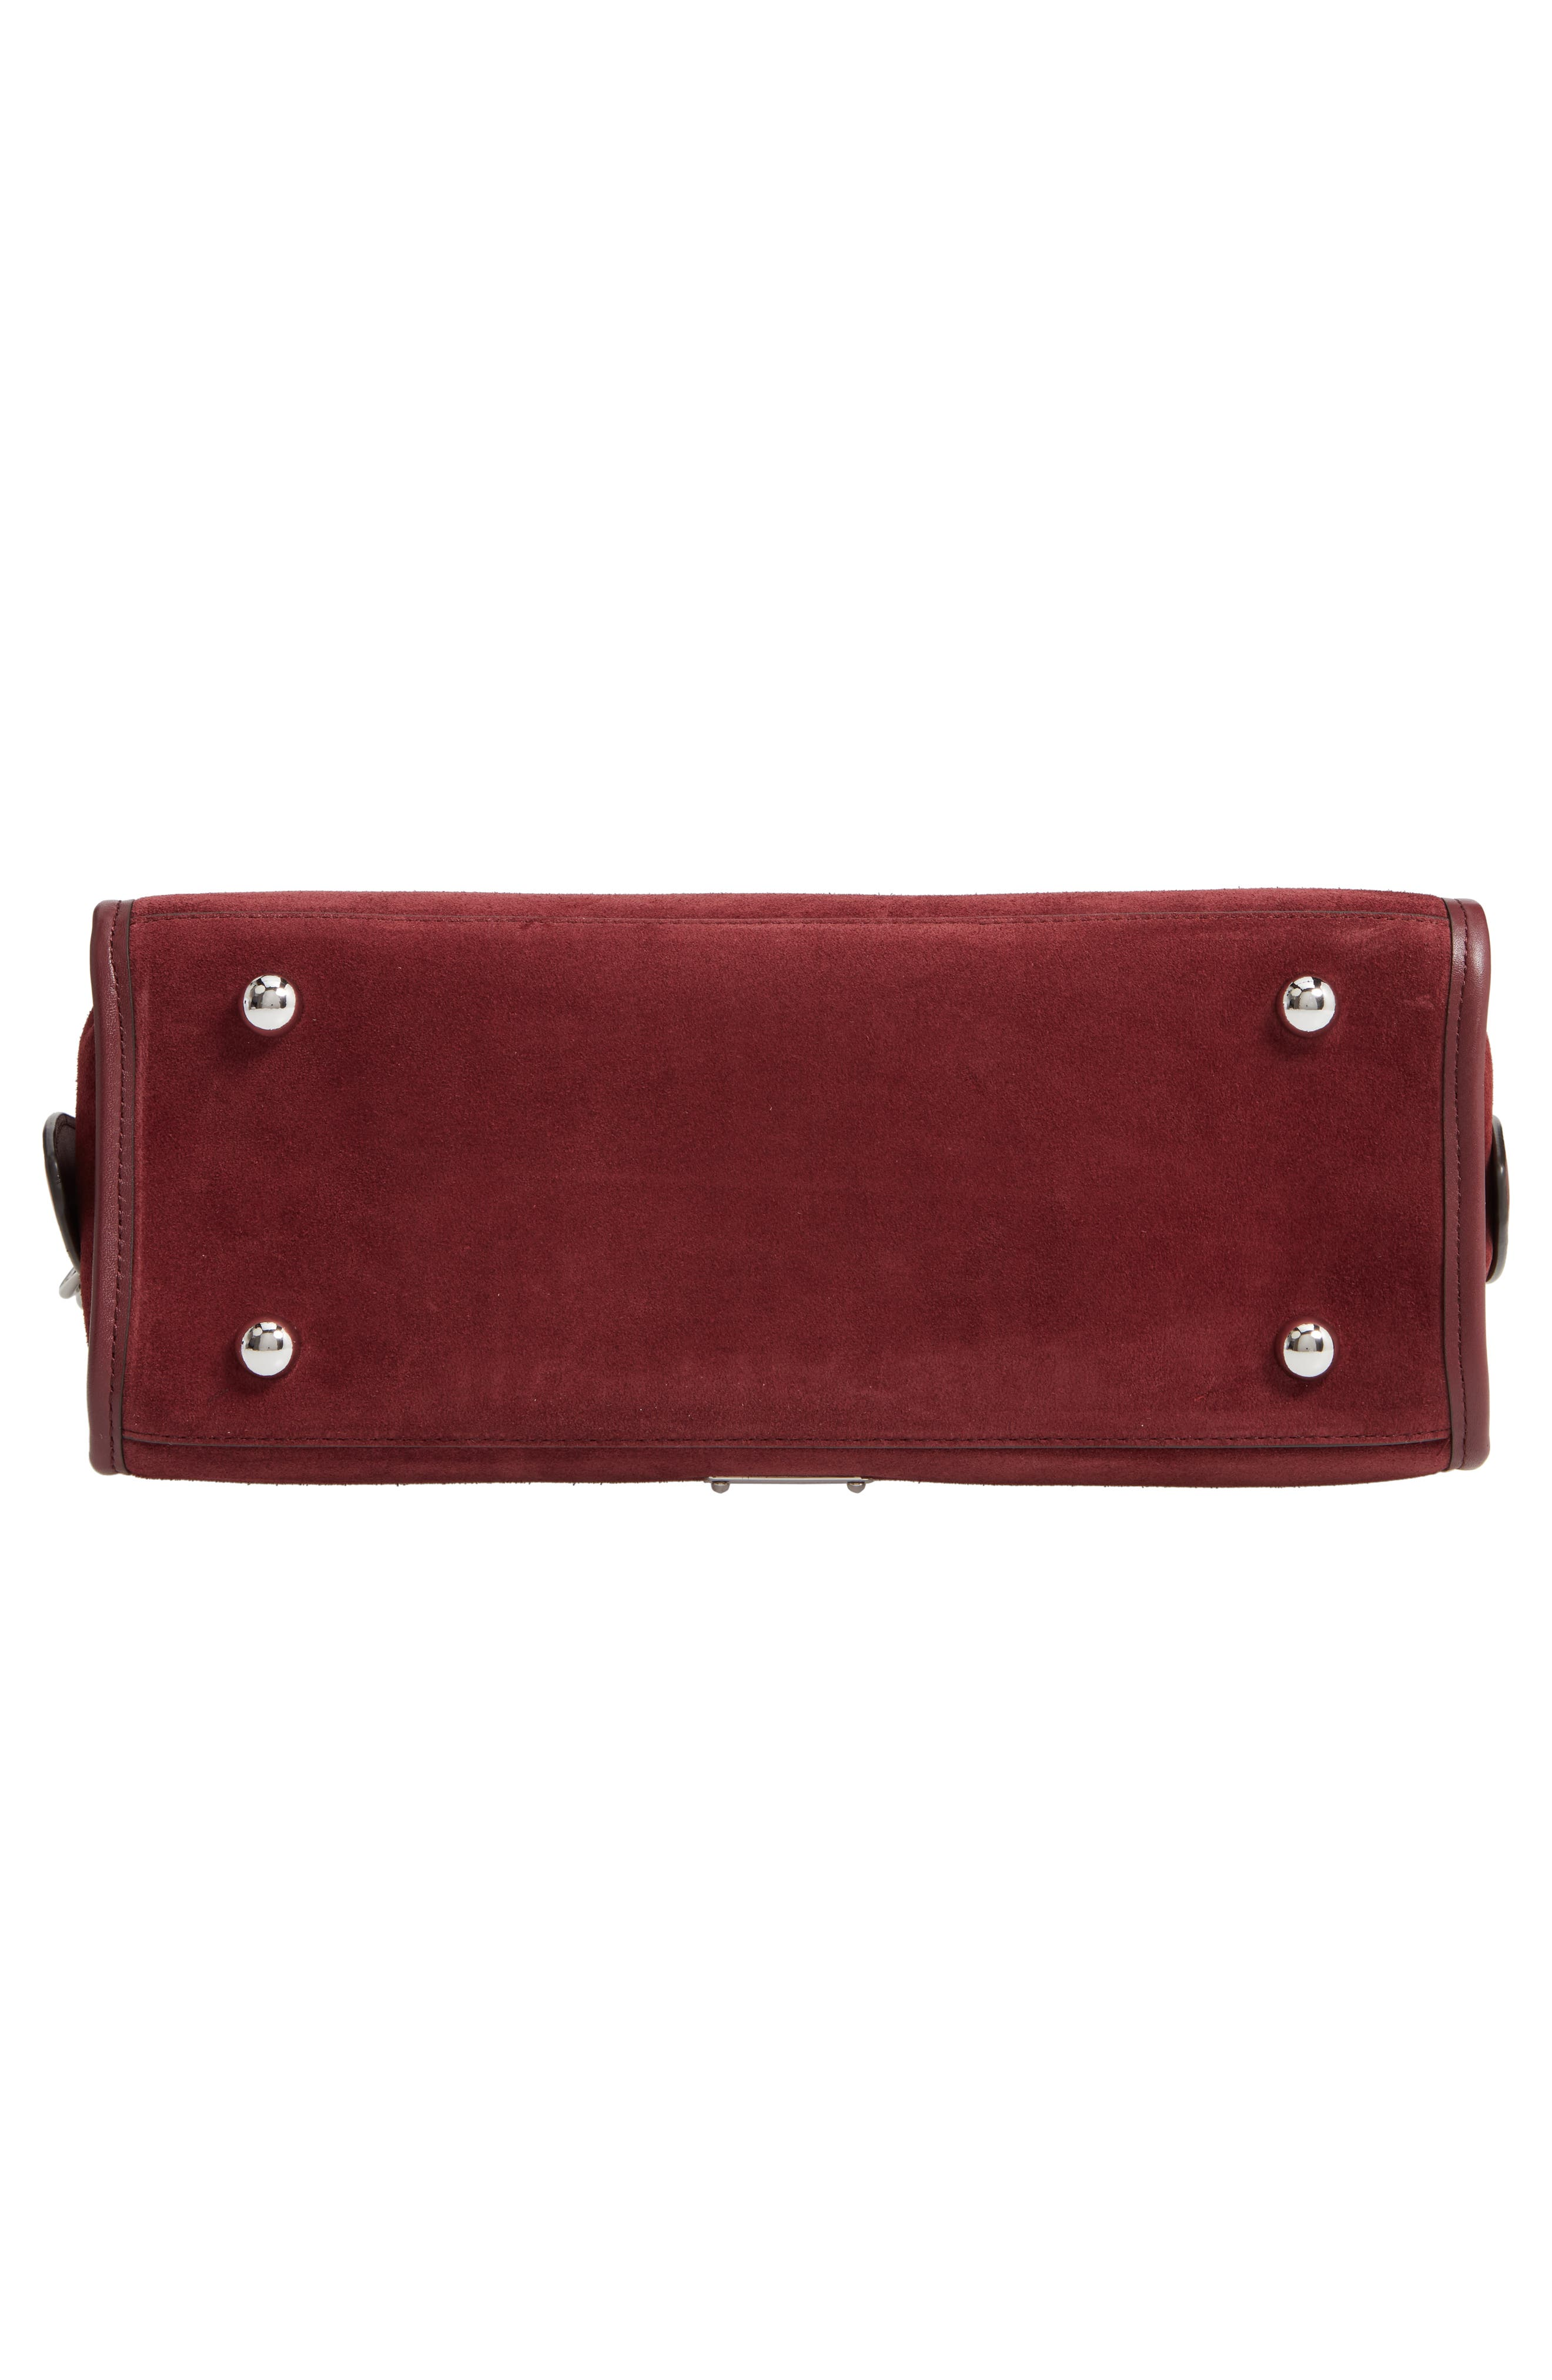 Bedford Suede Satchel,                             Alternate thumbnail 6, color,                             600